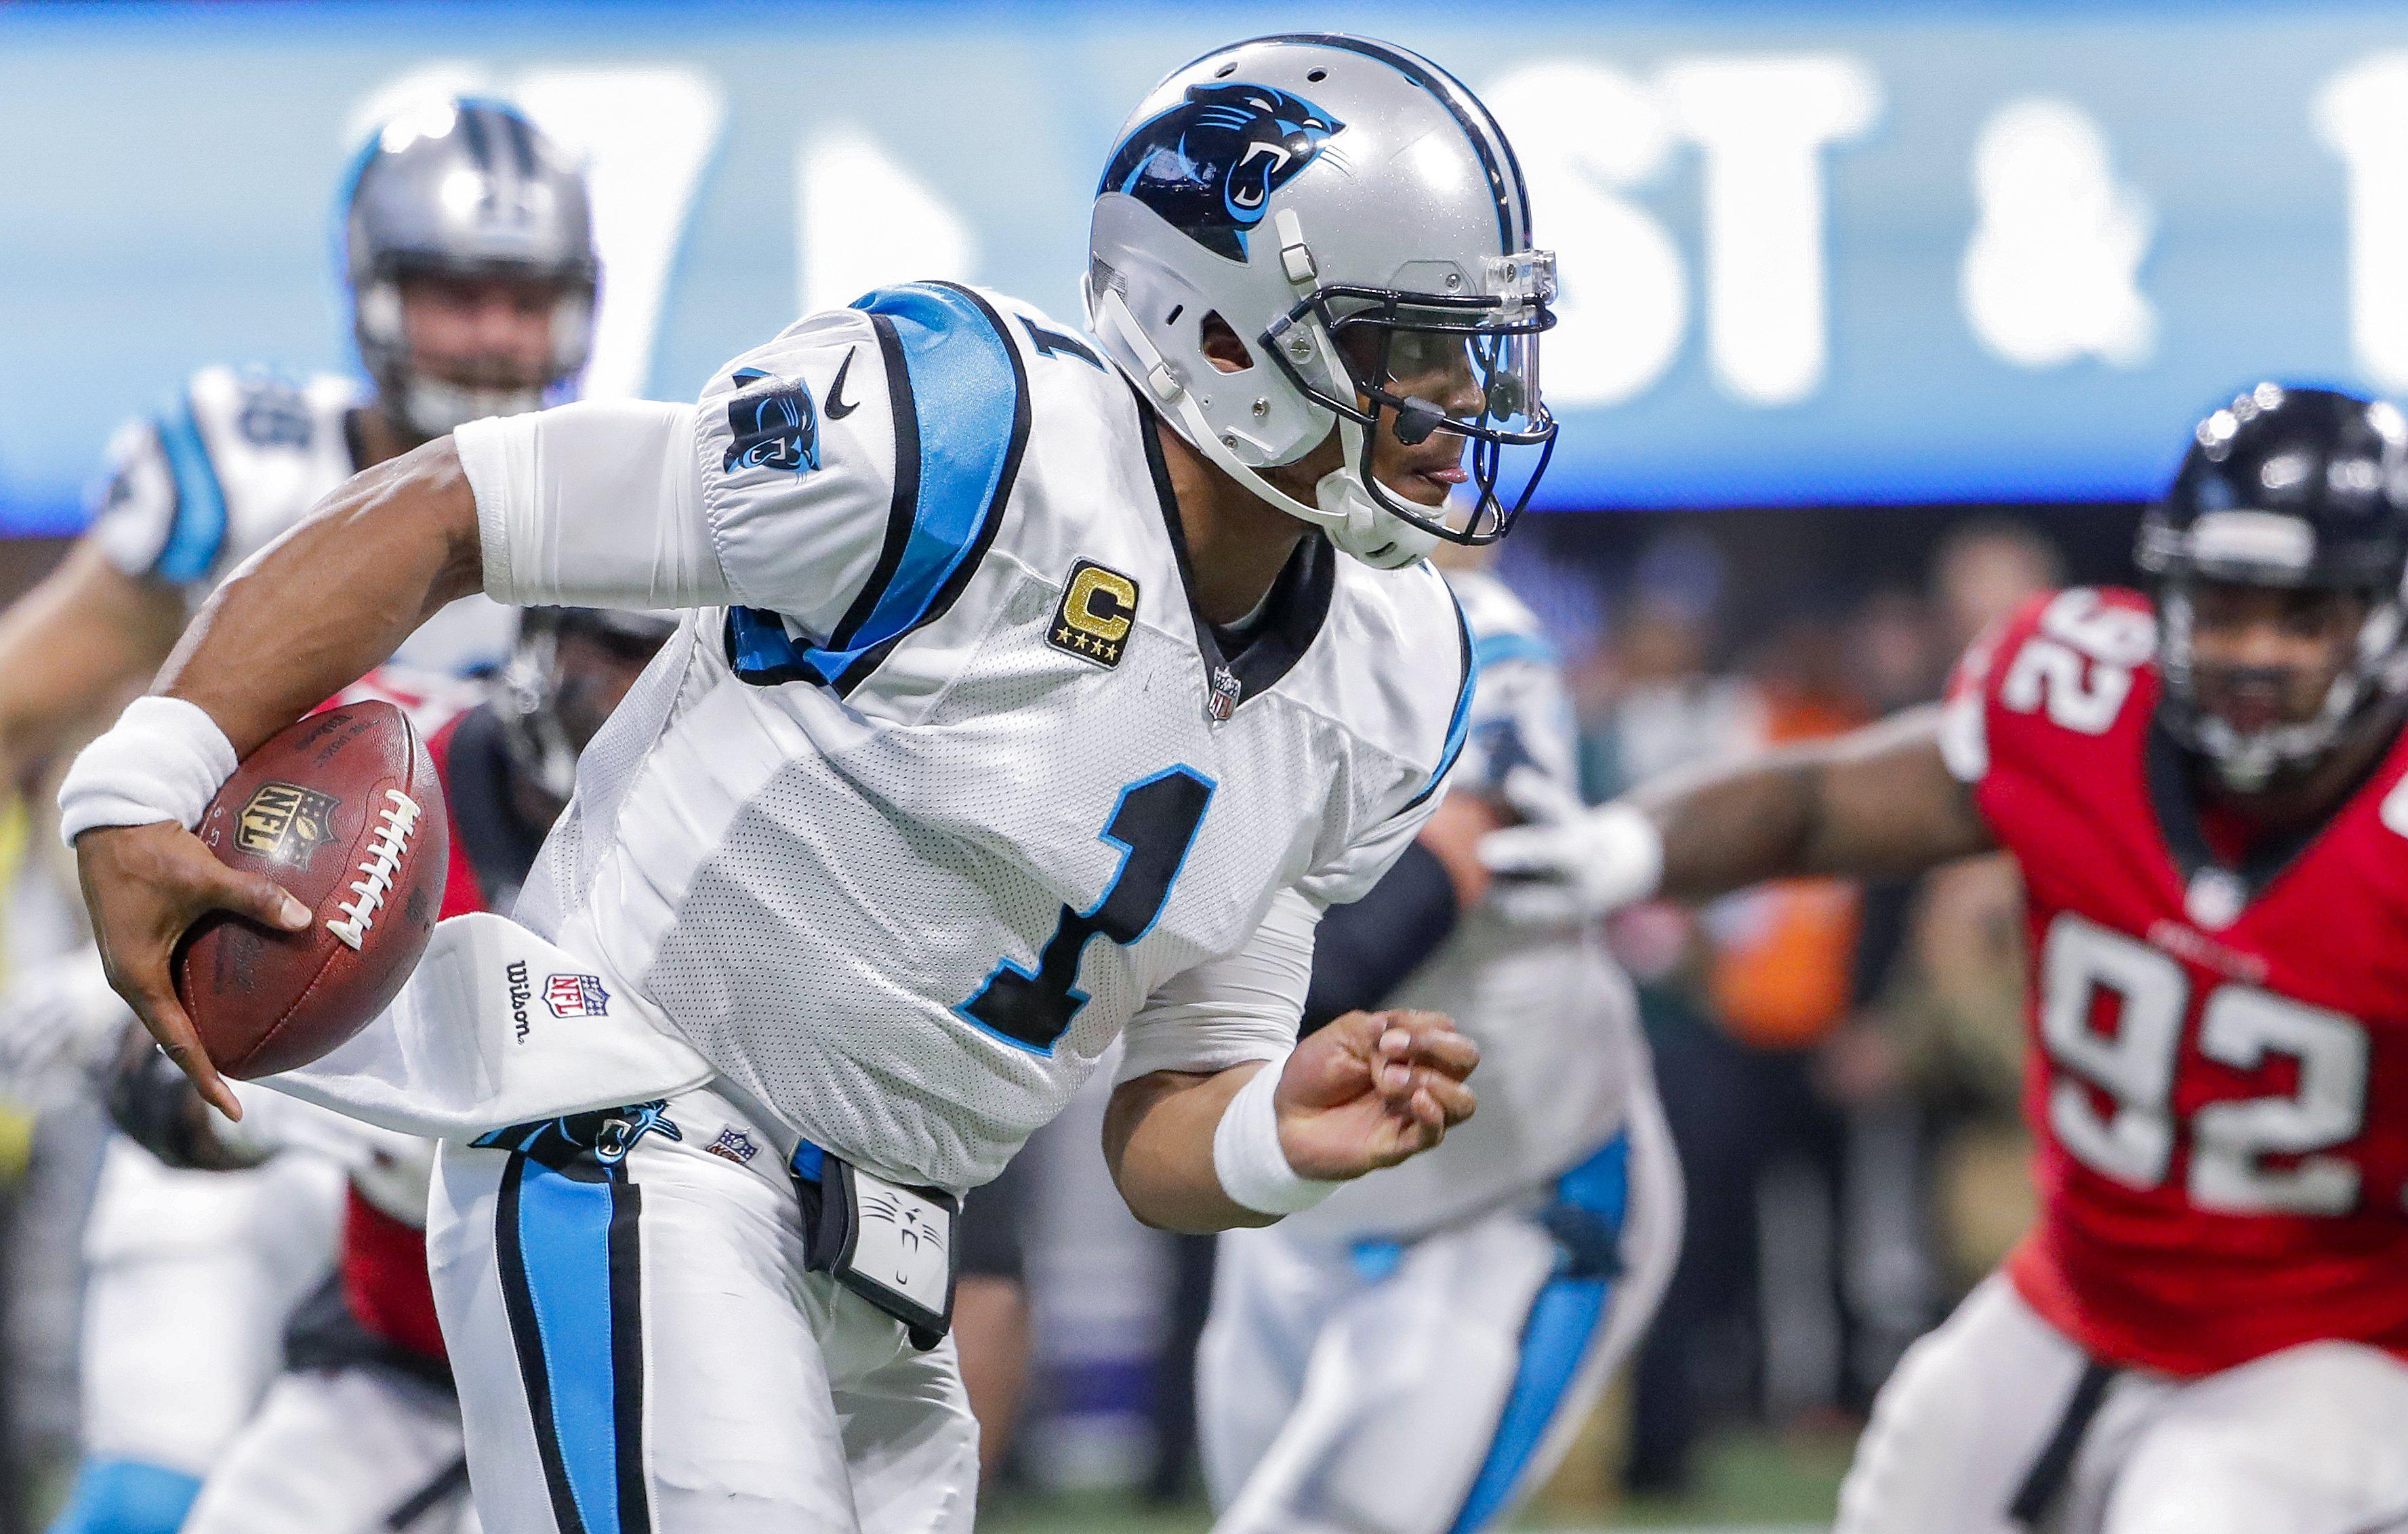 Cam Newton will come alive on the big stage under the play-off lights